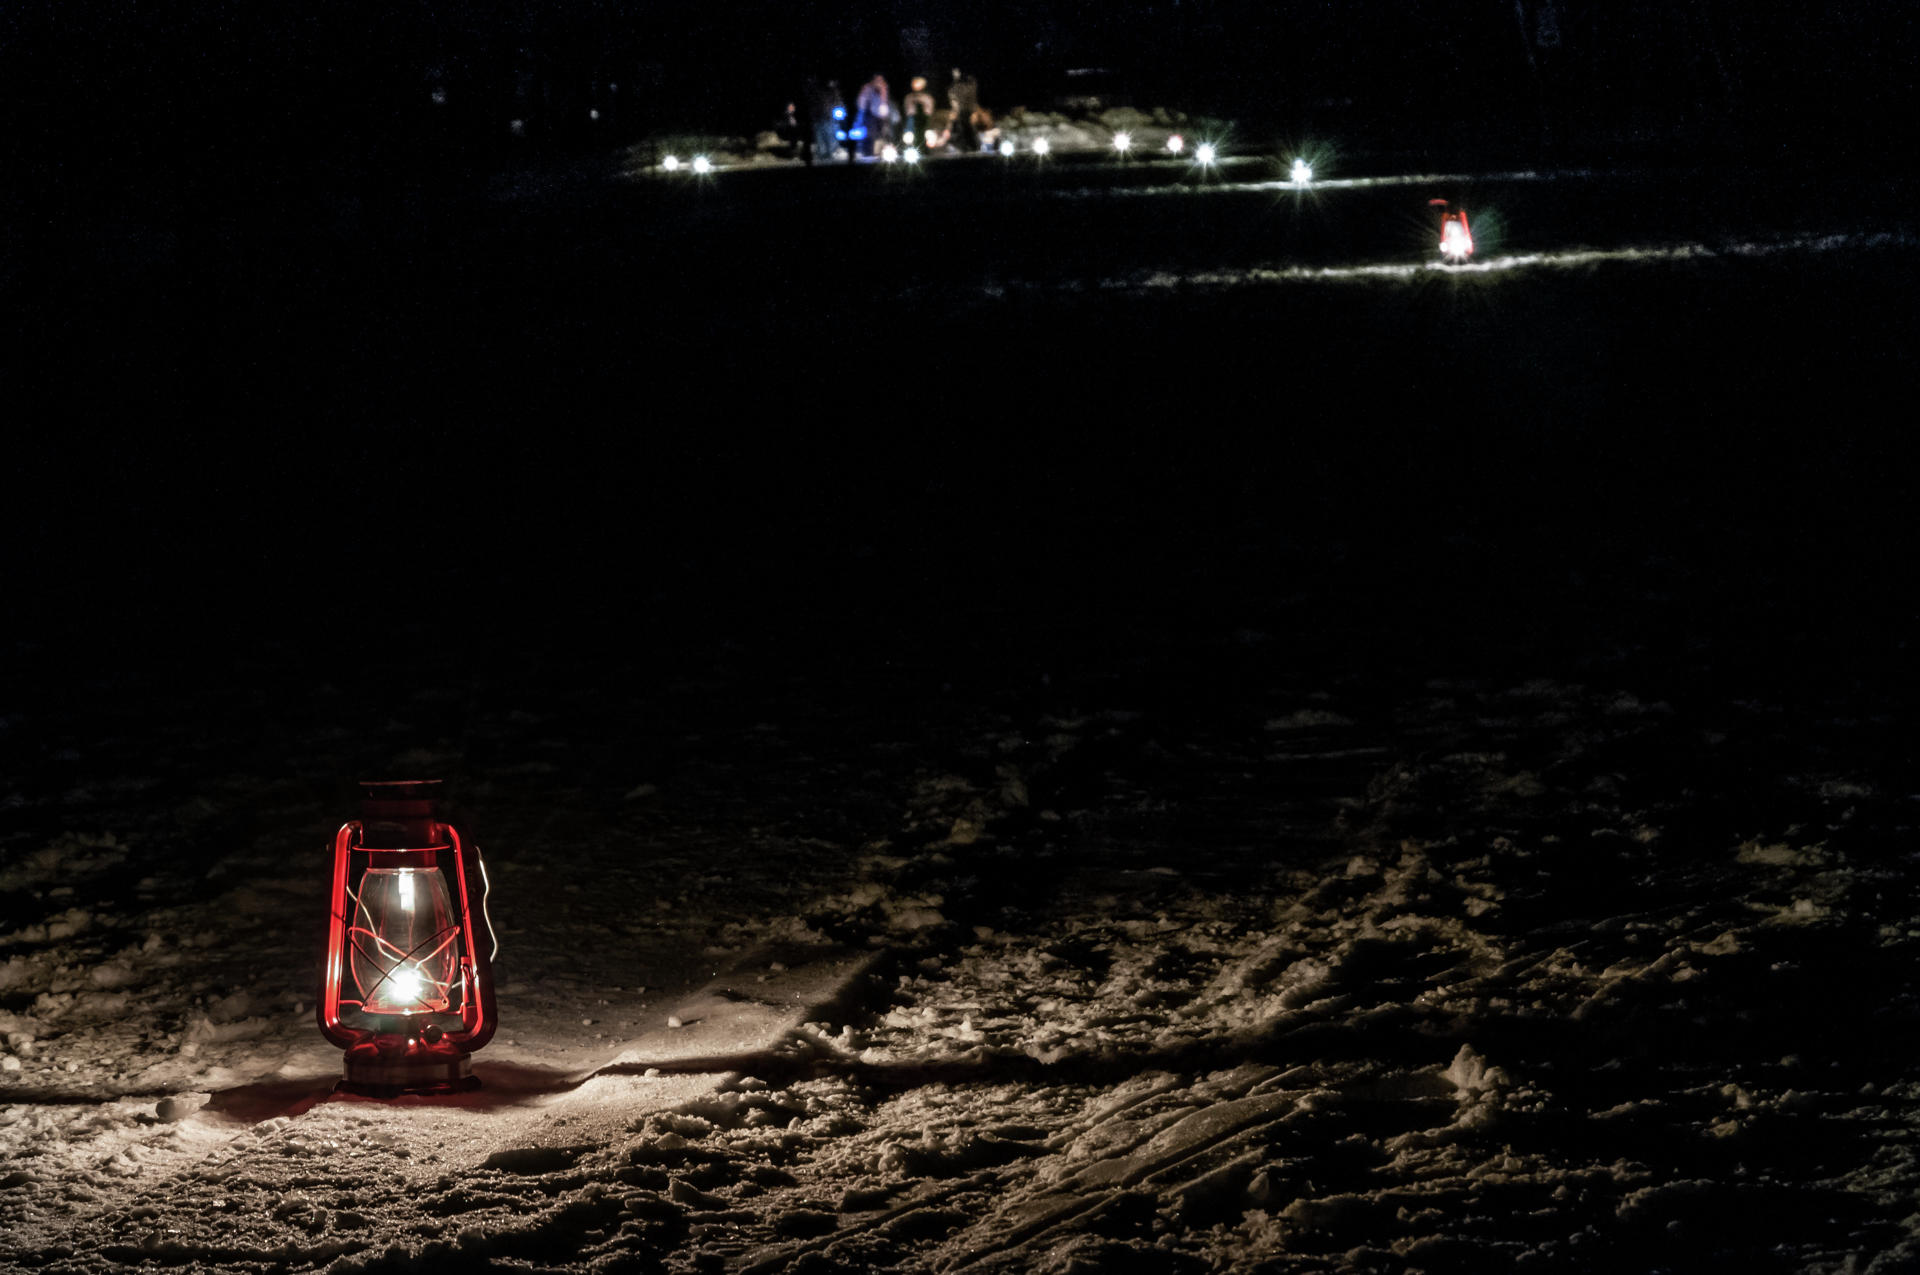 A single kerosene lantern lights this portion of the Lantern-Lit Ski & Snowshoe trail at Itasca State Park, as a campfire crackles merrily in the distance. (Minnesota DNR photo)